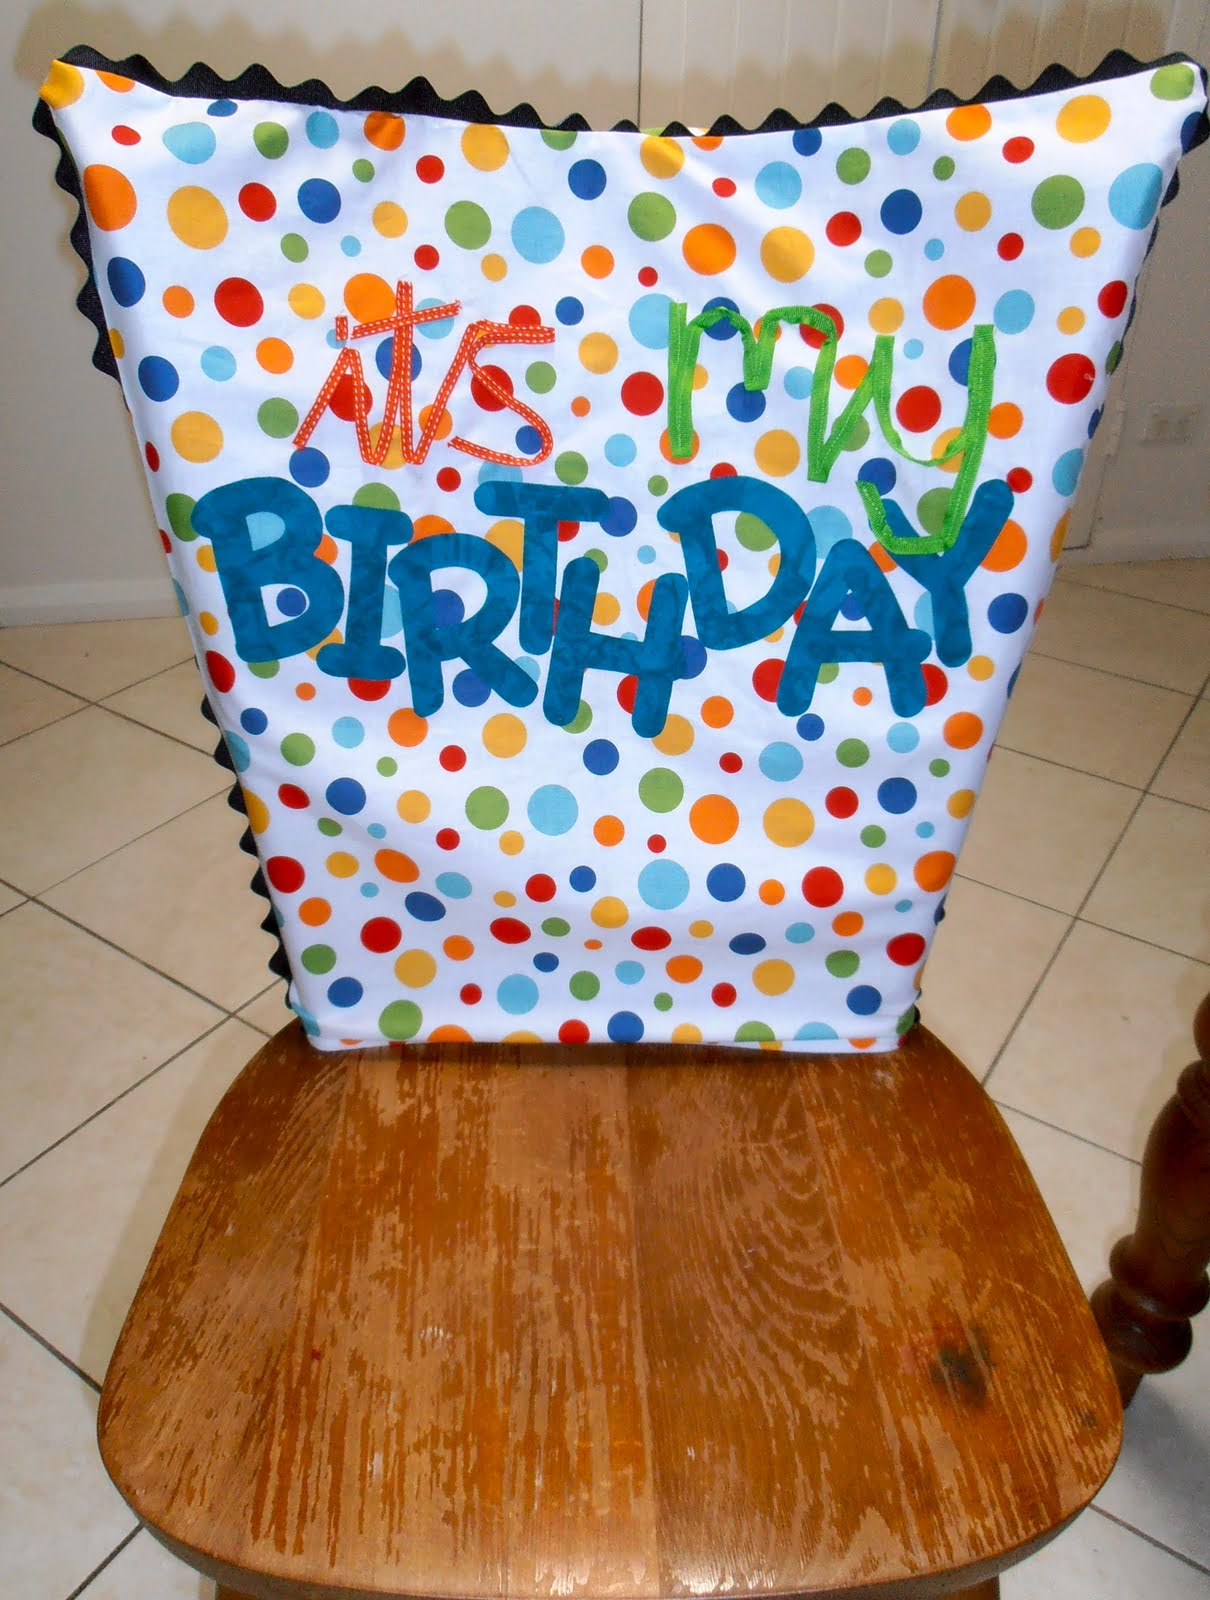 Giggleberry Creations!: It's My Birthday chair cover!